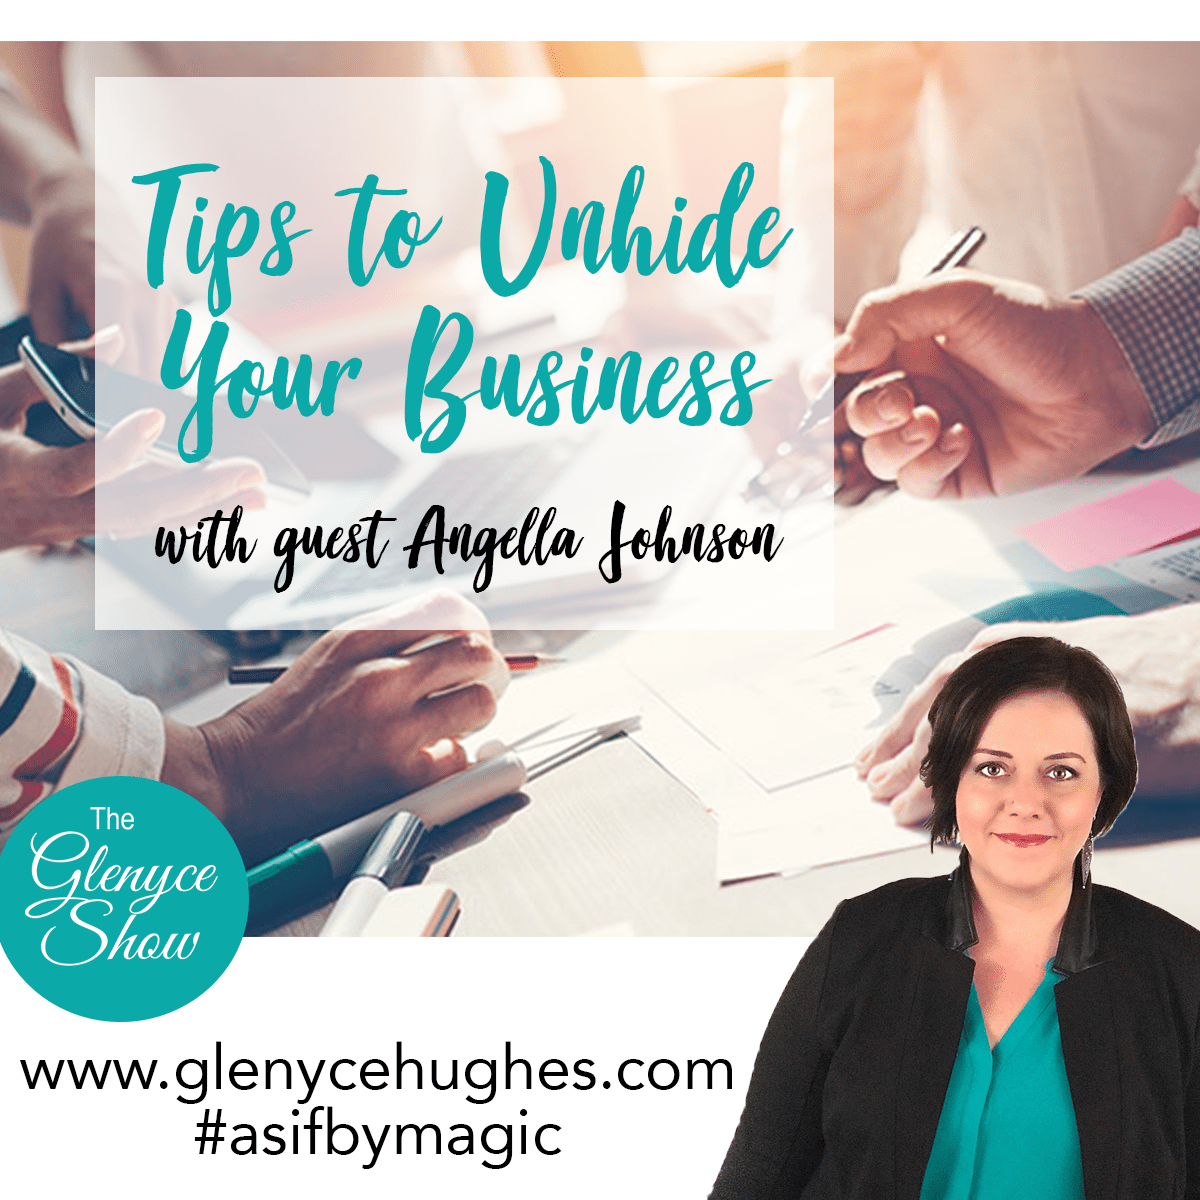 Tips to Unhide Your Business